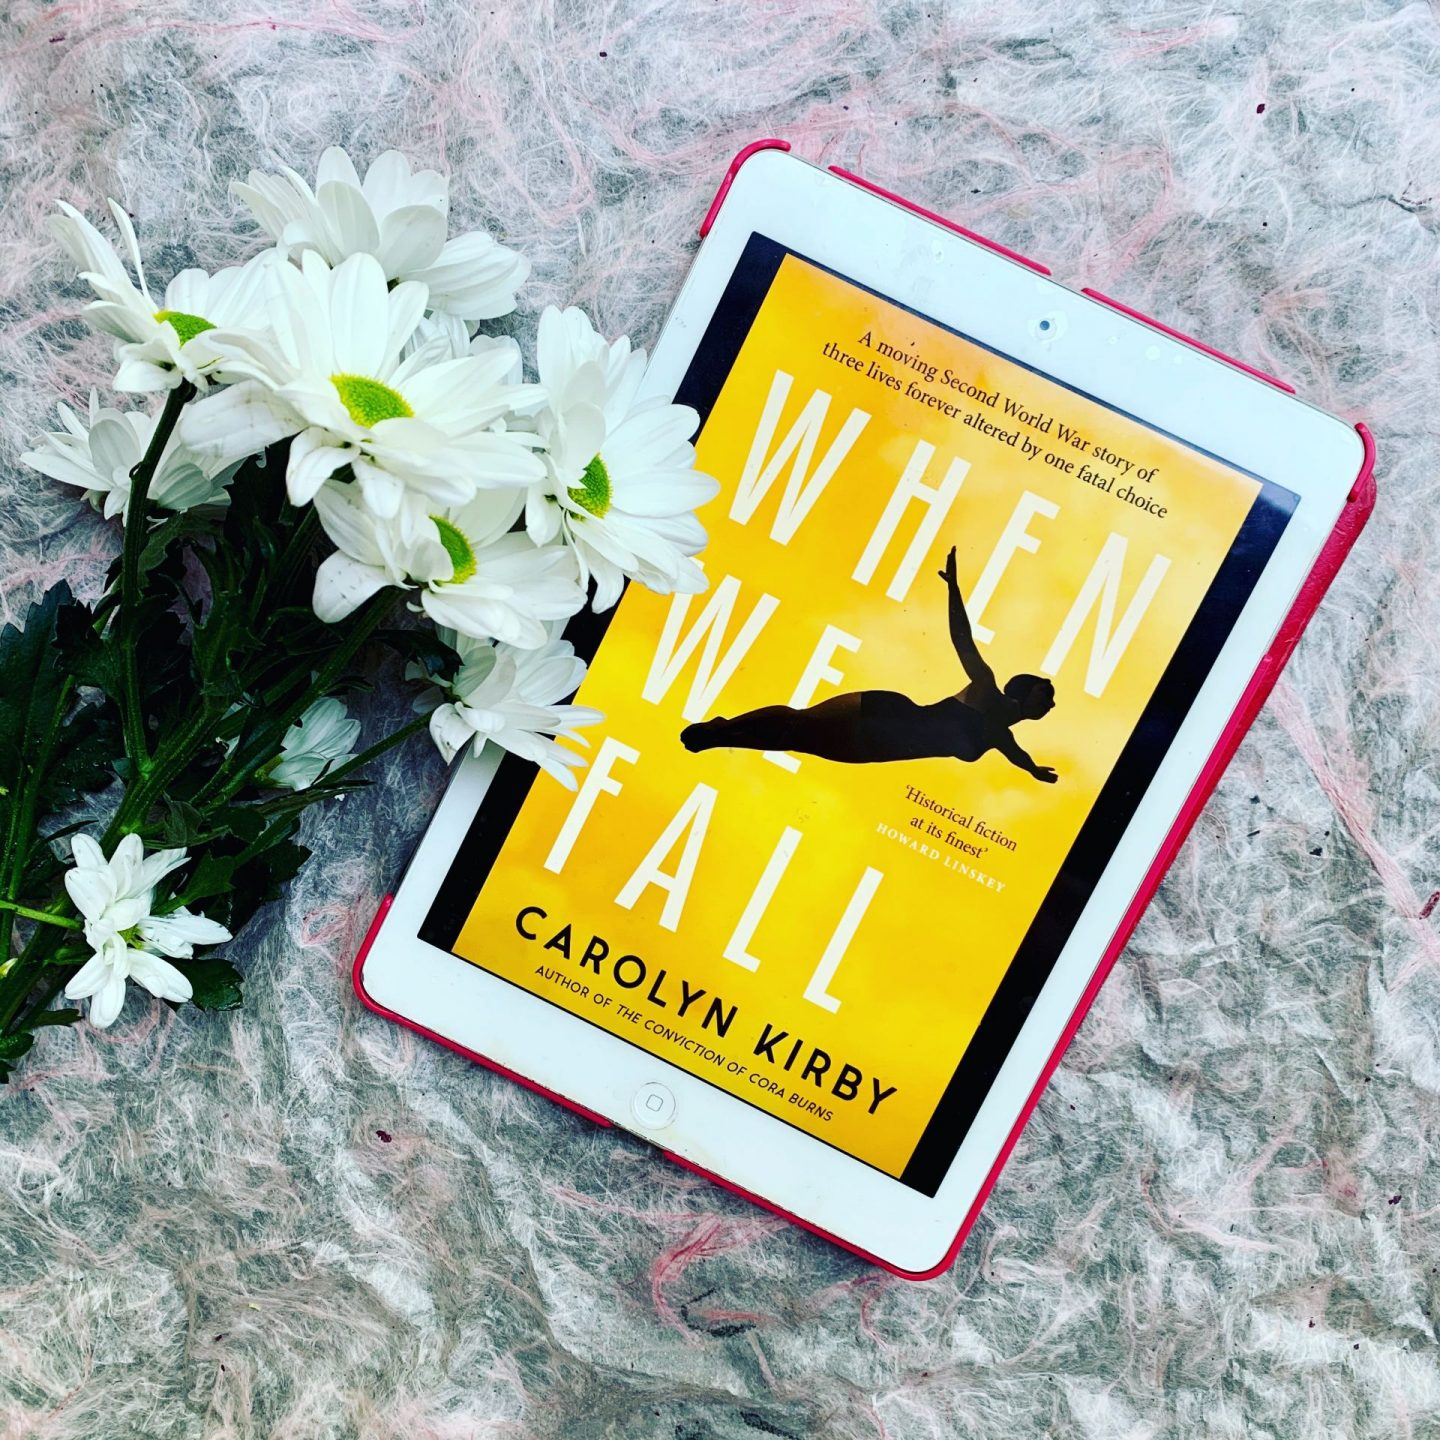 When We Fall; haunting historical fiction